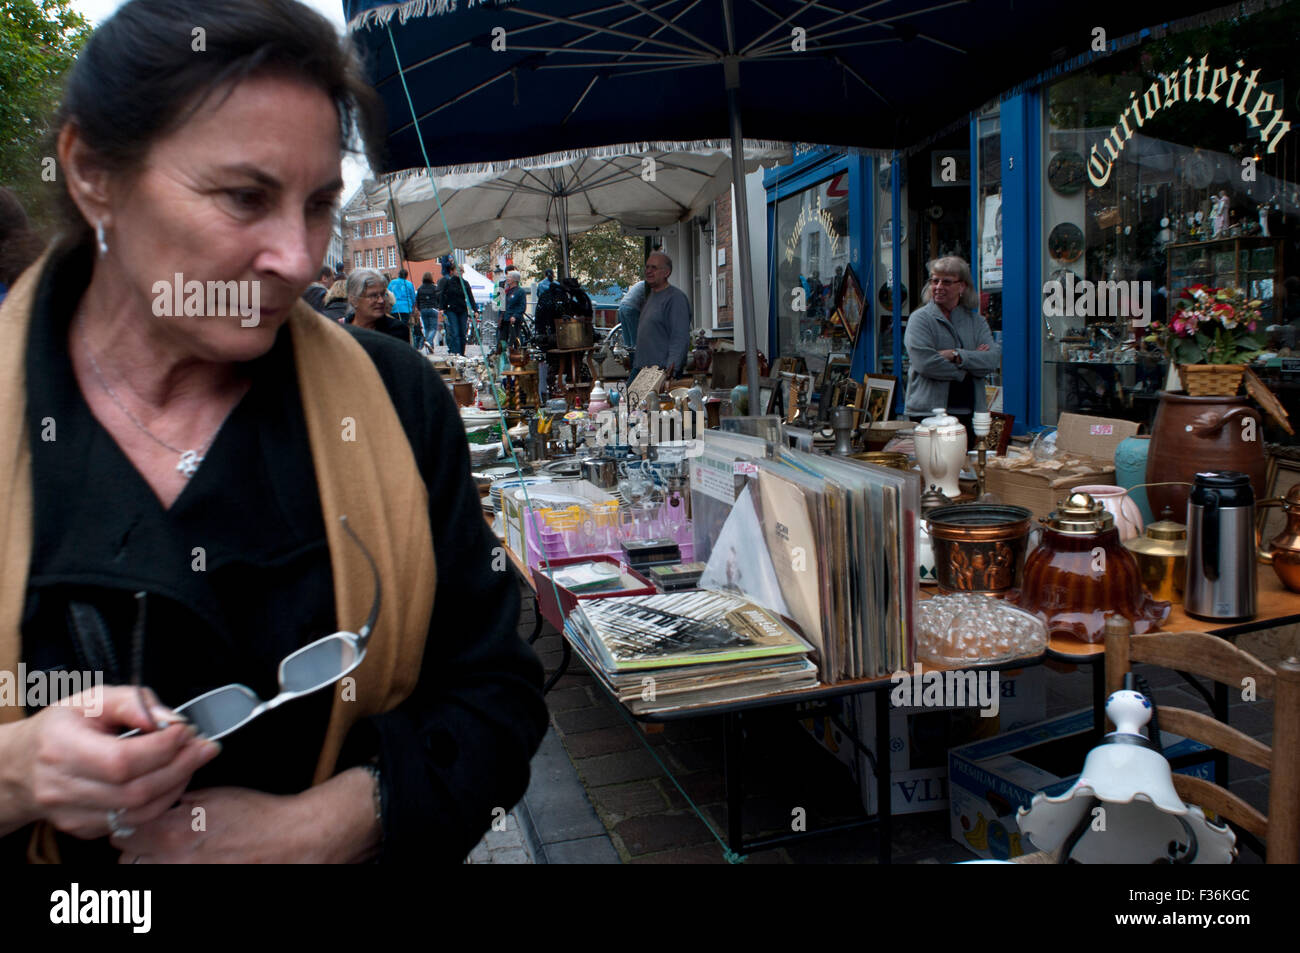 Bruges Antiques and Flea Market – Twice weekly flea market beside the Dijver canal, Bruges, Belgium. A shopaholic's - Stock Image